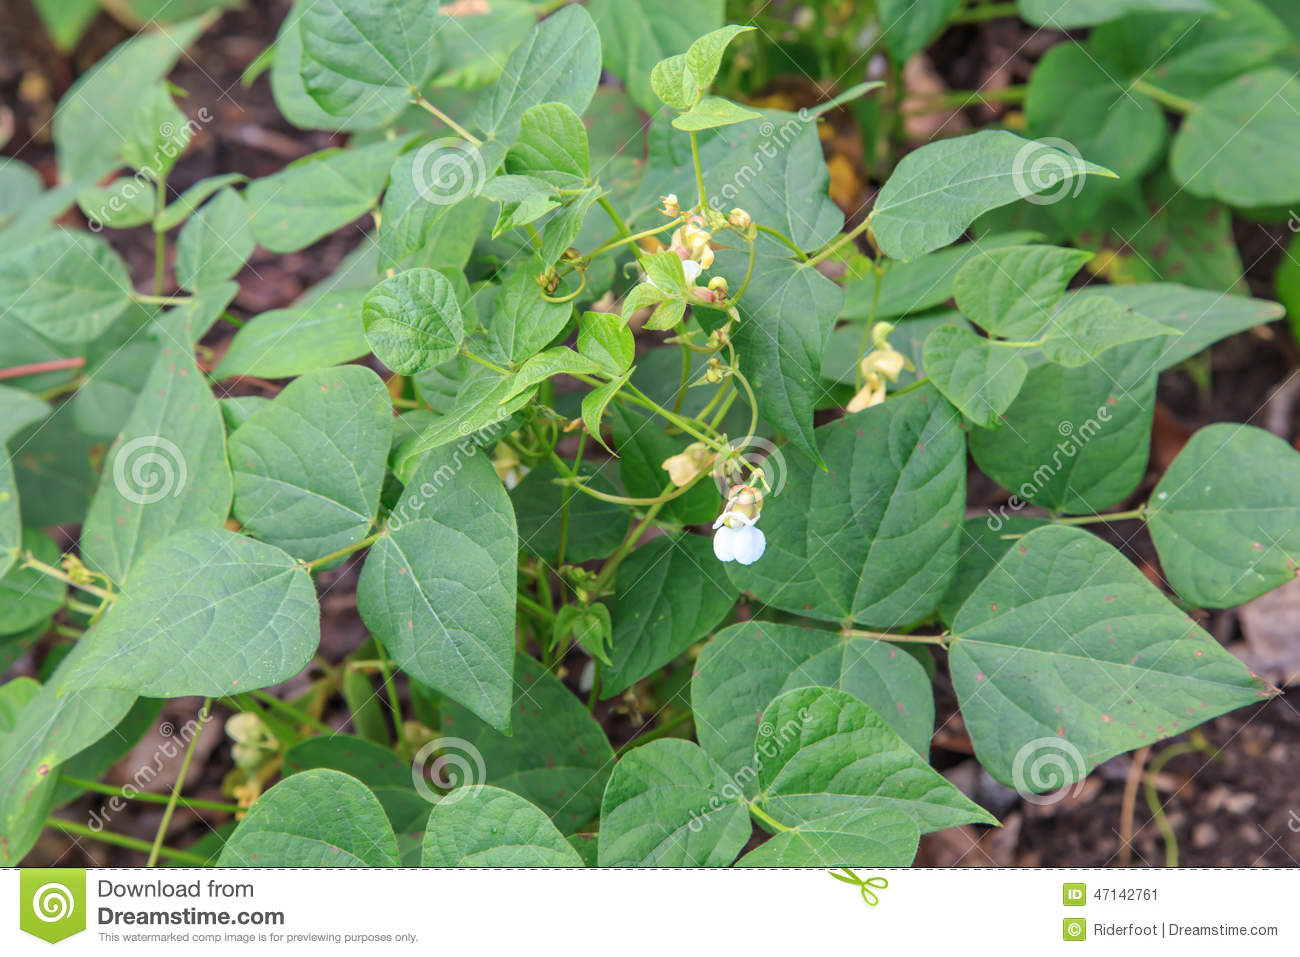 Frijol or black bean plant from a plantation